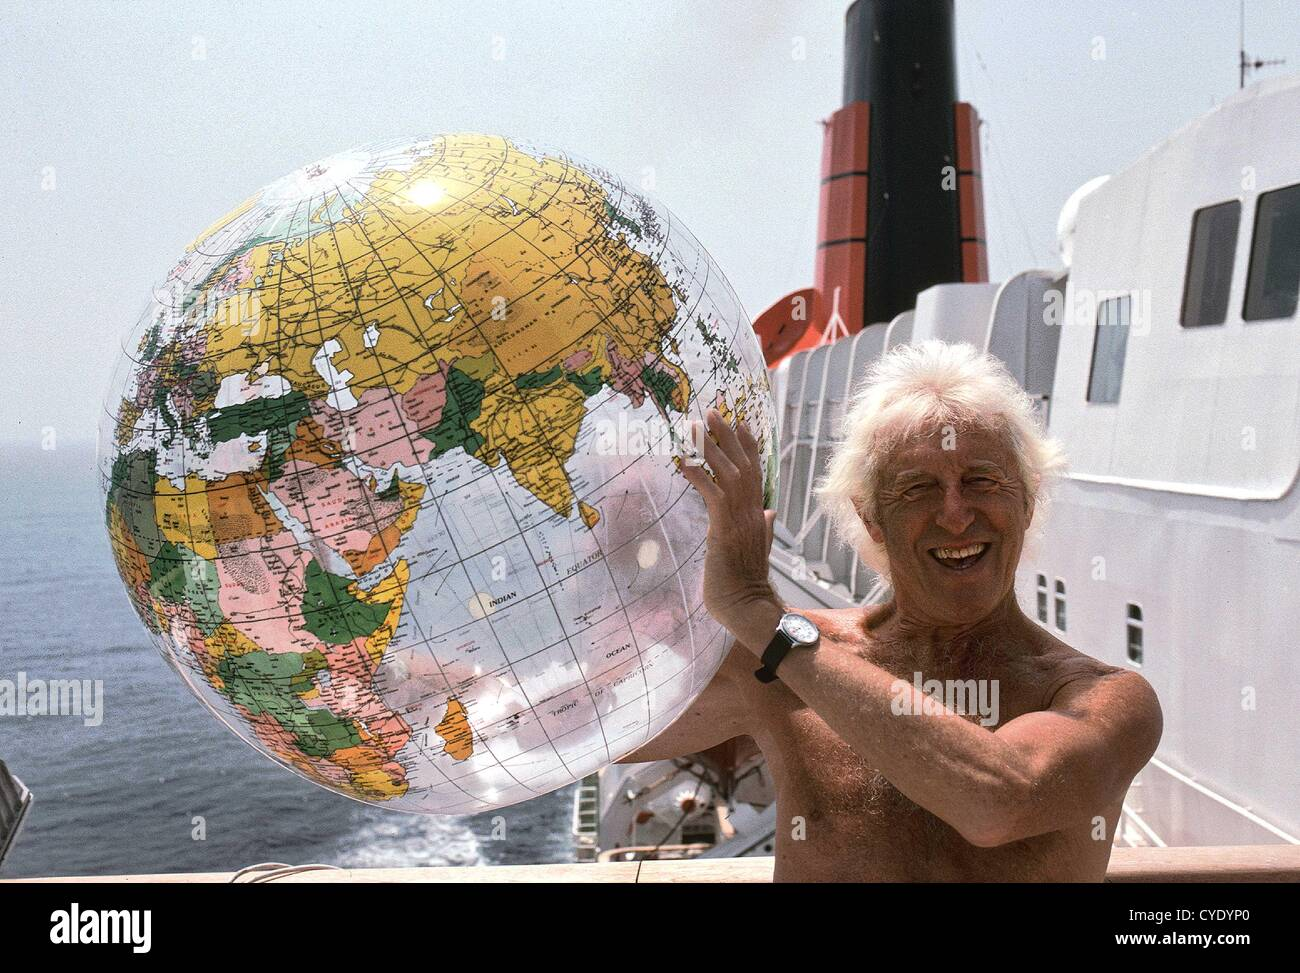 Jimmy Savile Sexual Abuse Scandal Sir Jimmy Savile, OBE pictured aboard the Queen Elizabeth 2 during the liner's Stock Photo